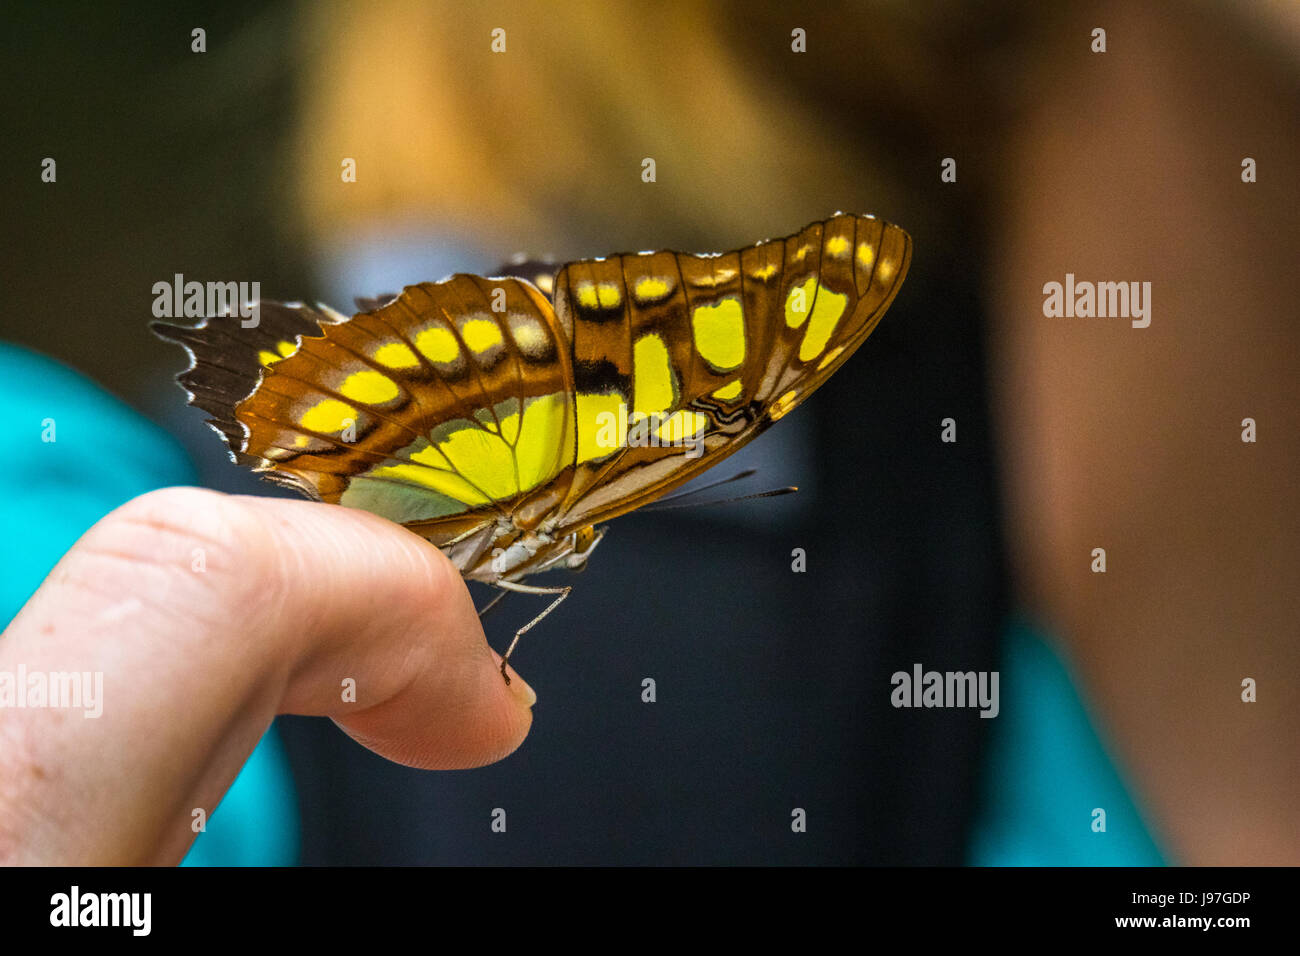 Close up of a brown and yellow butterfly on a human finger taken at the La Paz Waterfall Gardens in Costa Rica - Stock Image